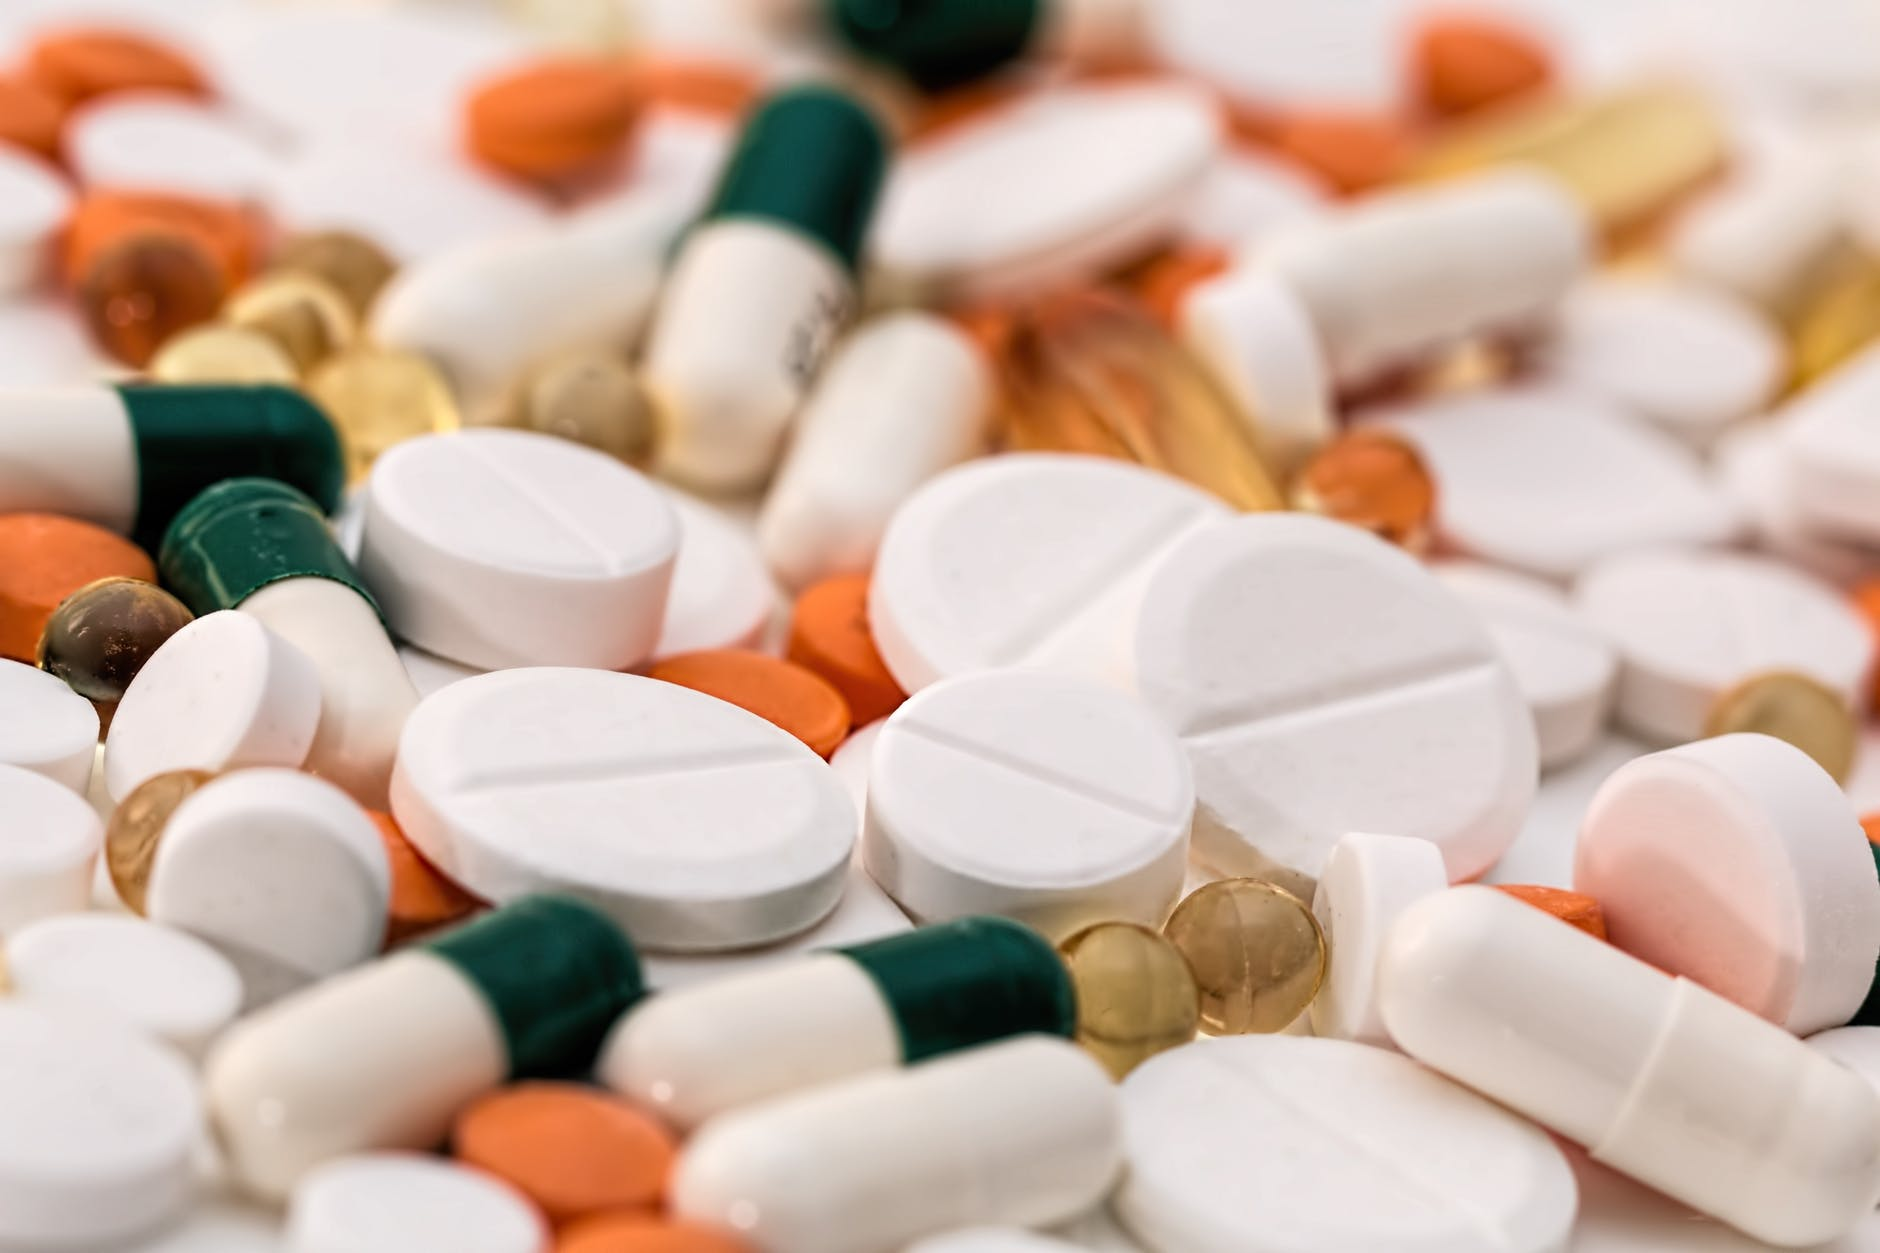 pills and medication as failed healthcare